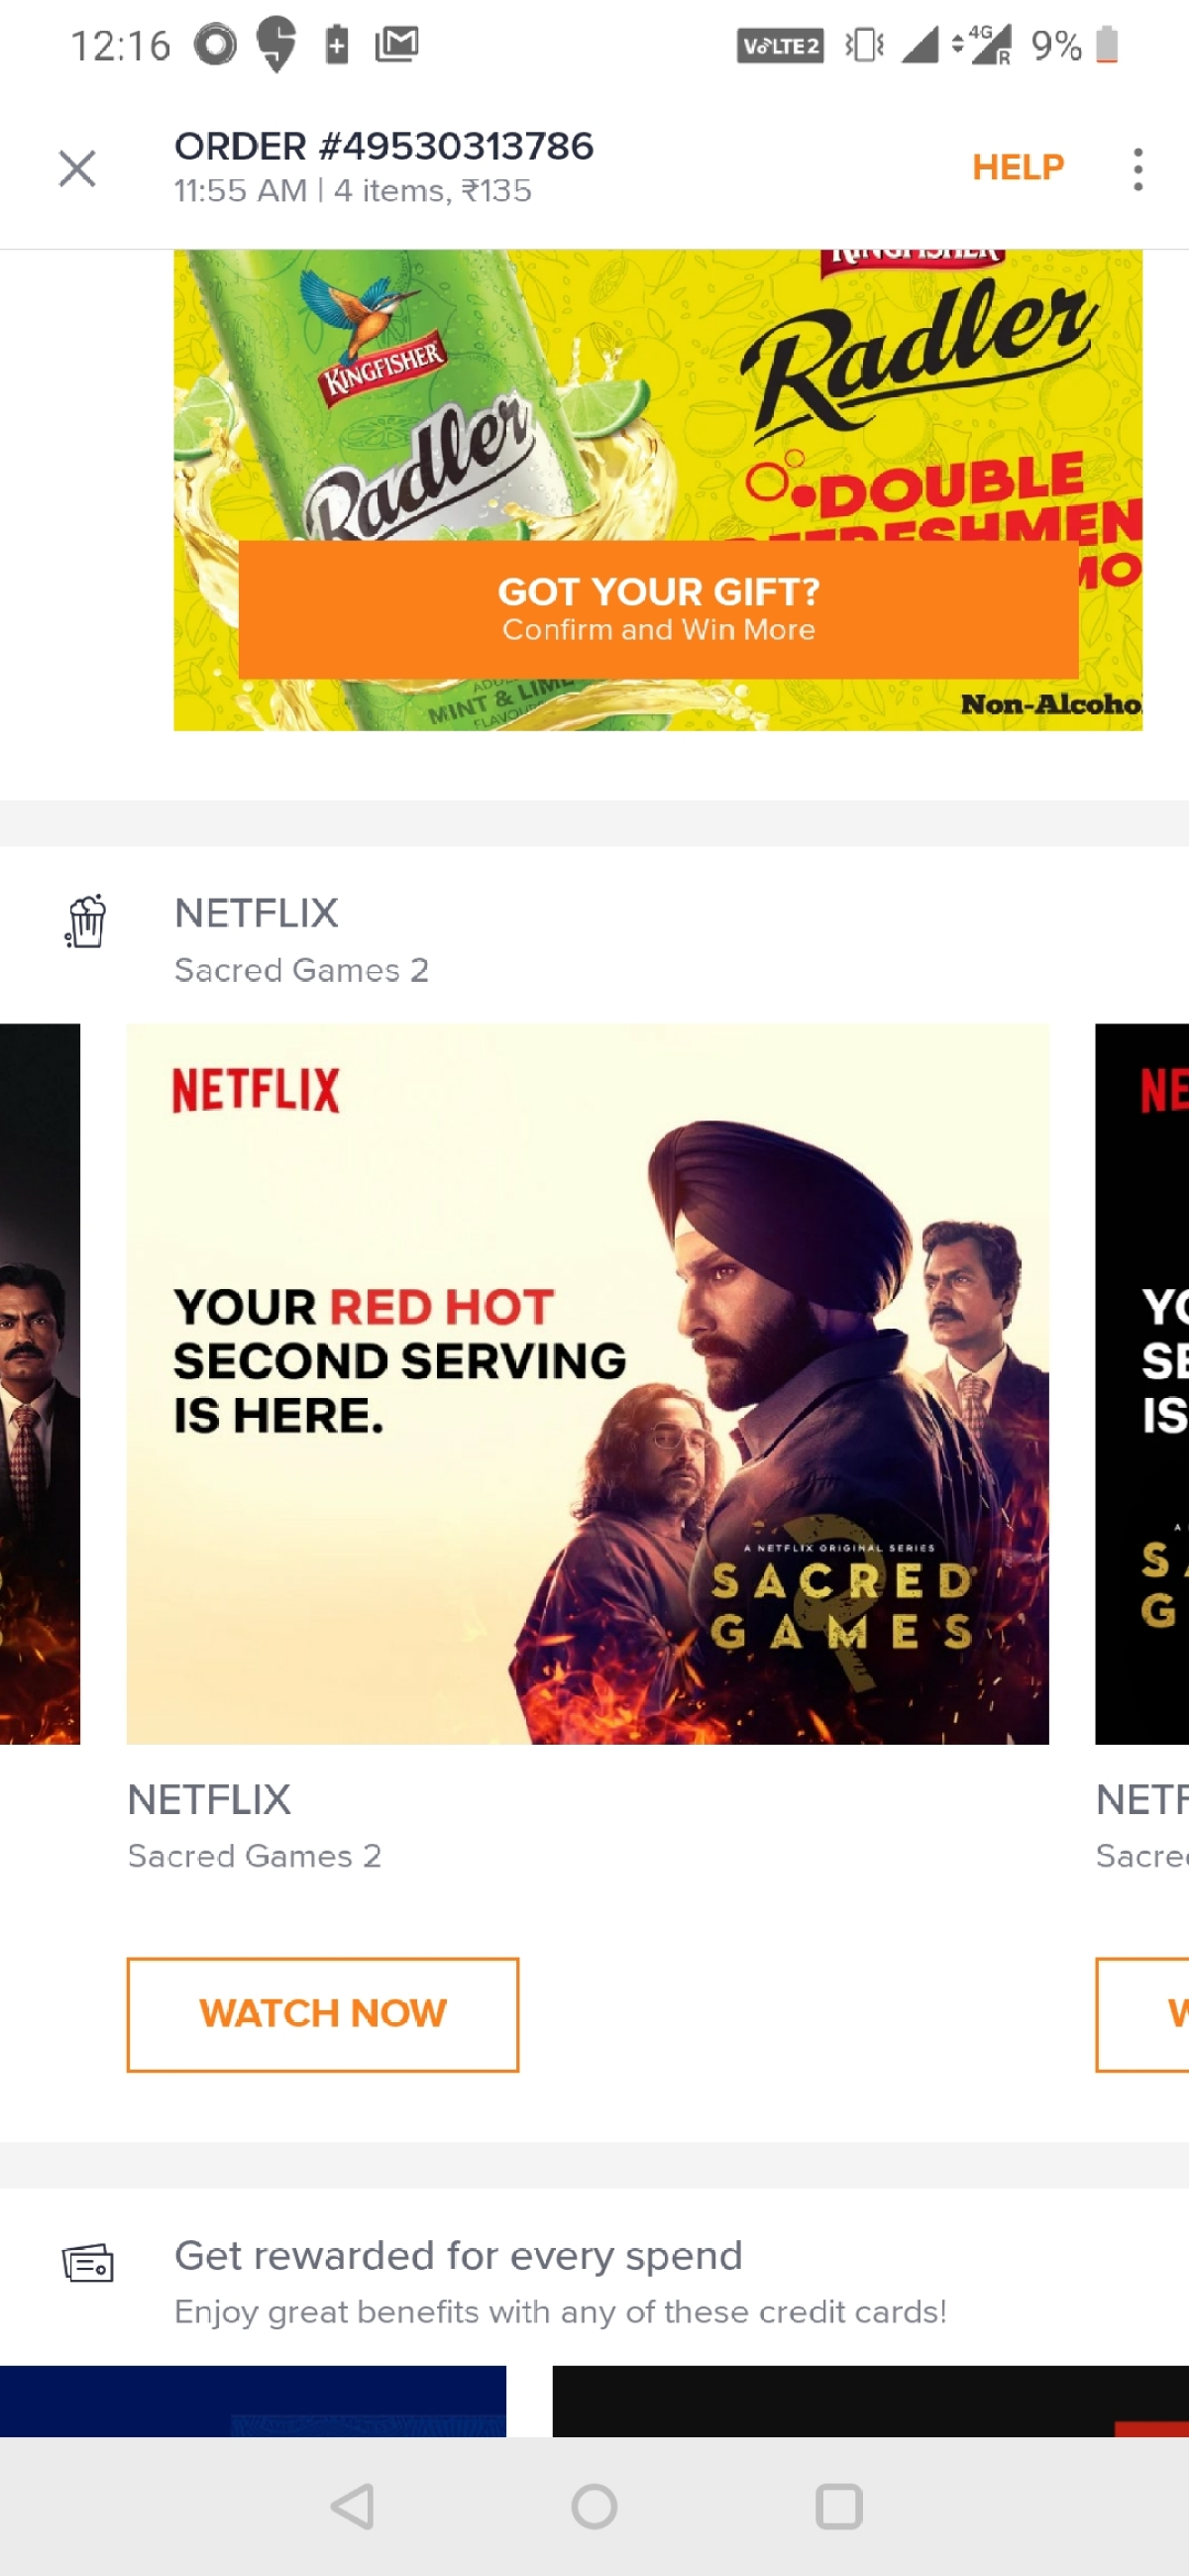 An ad for Netflix's Sacred Games on Swiggy